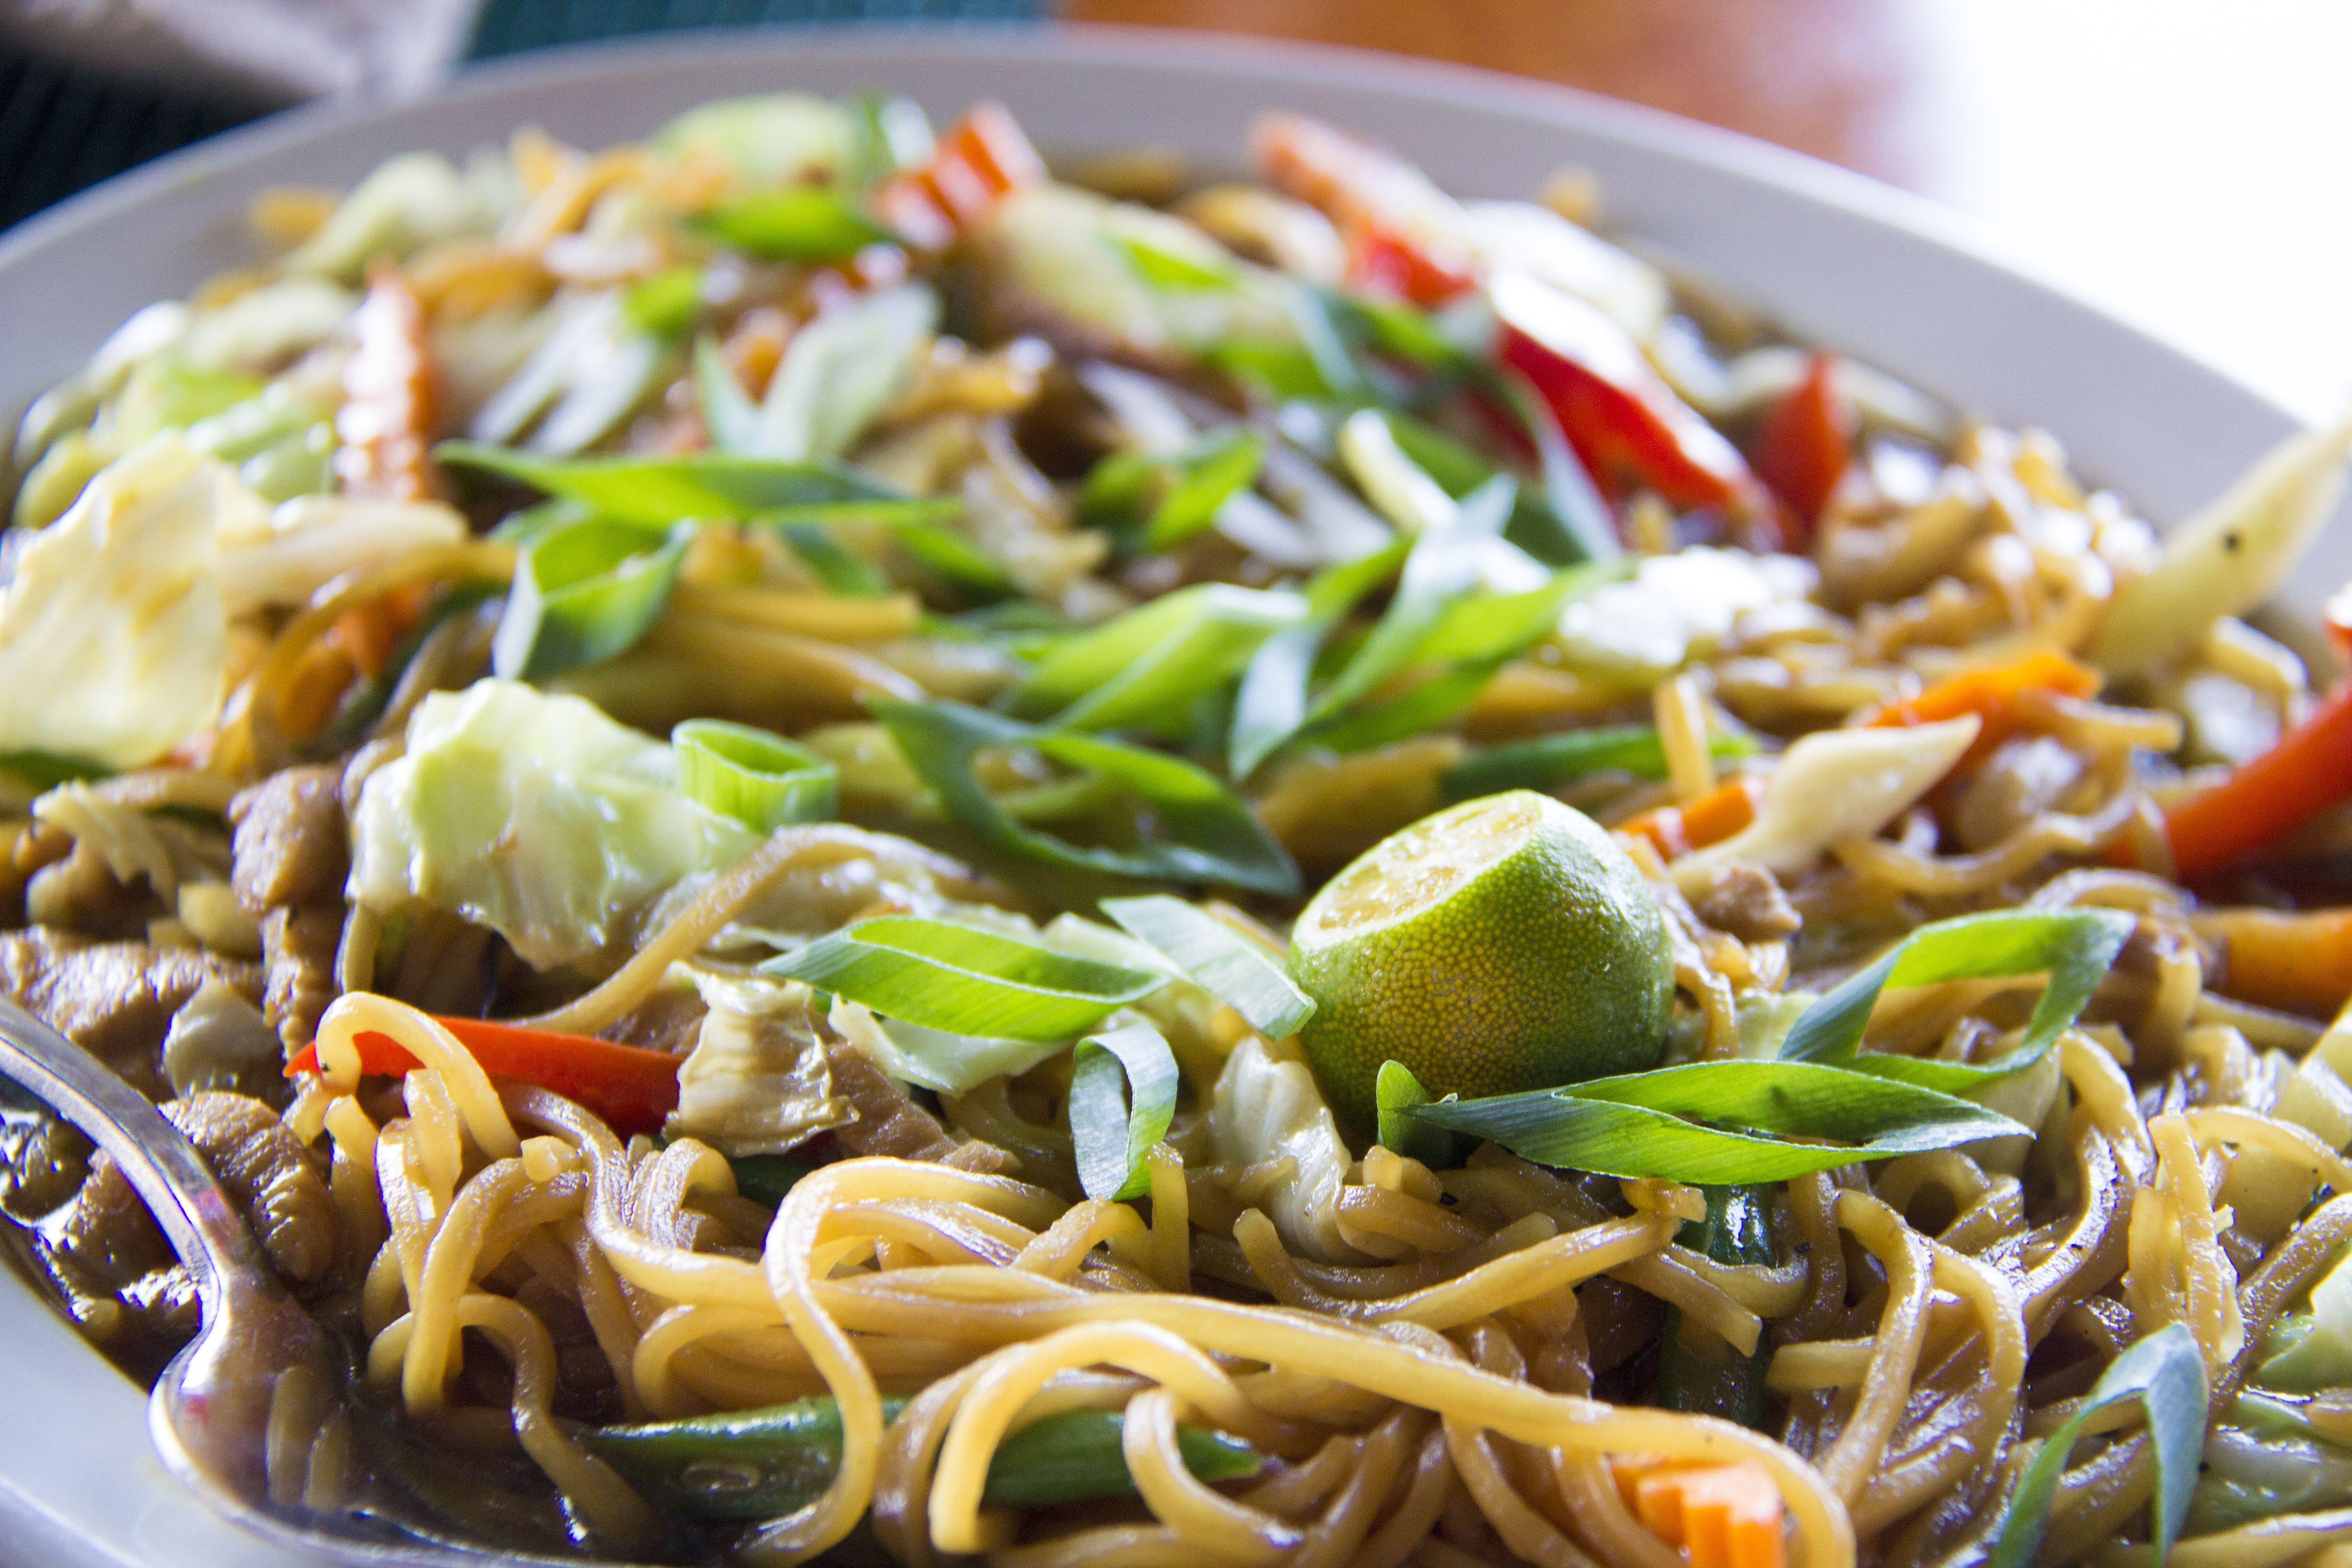 Pancit canton, a dish in the Philippines